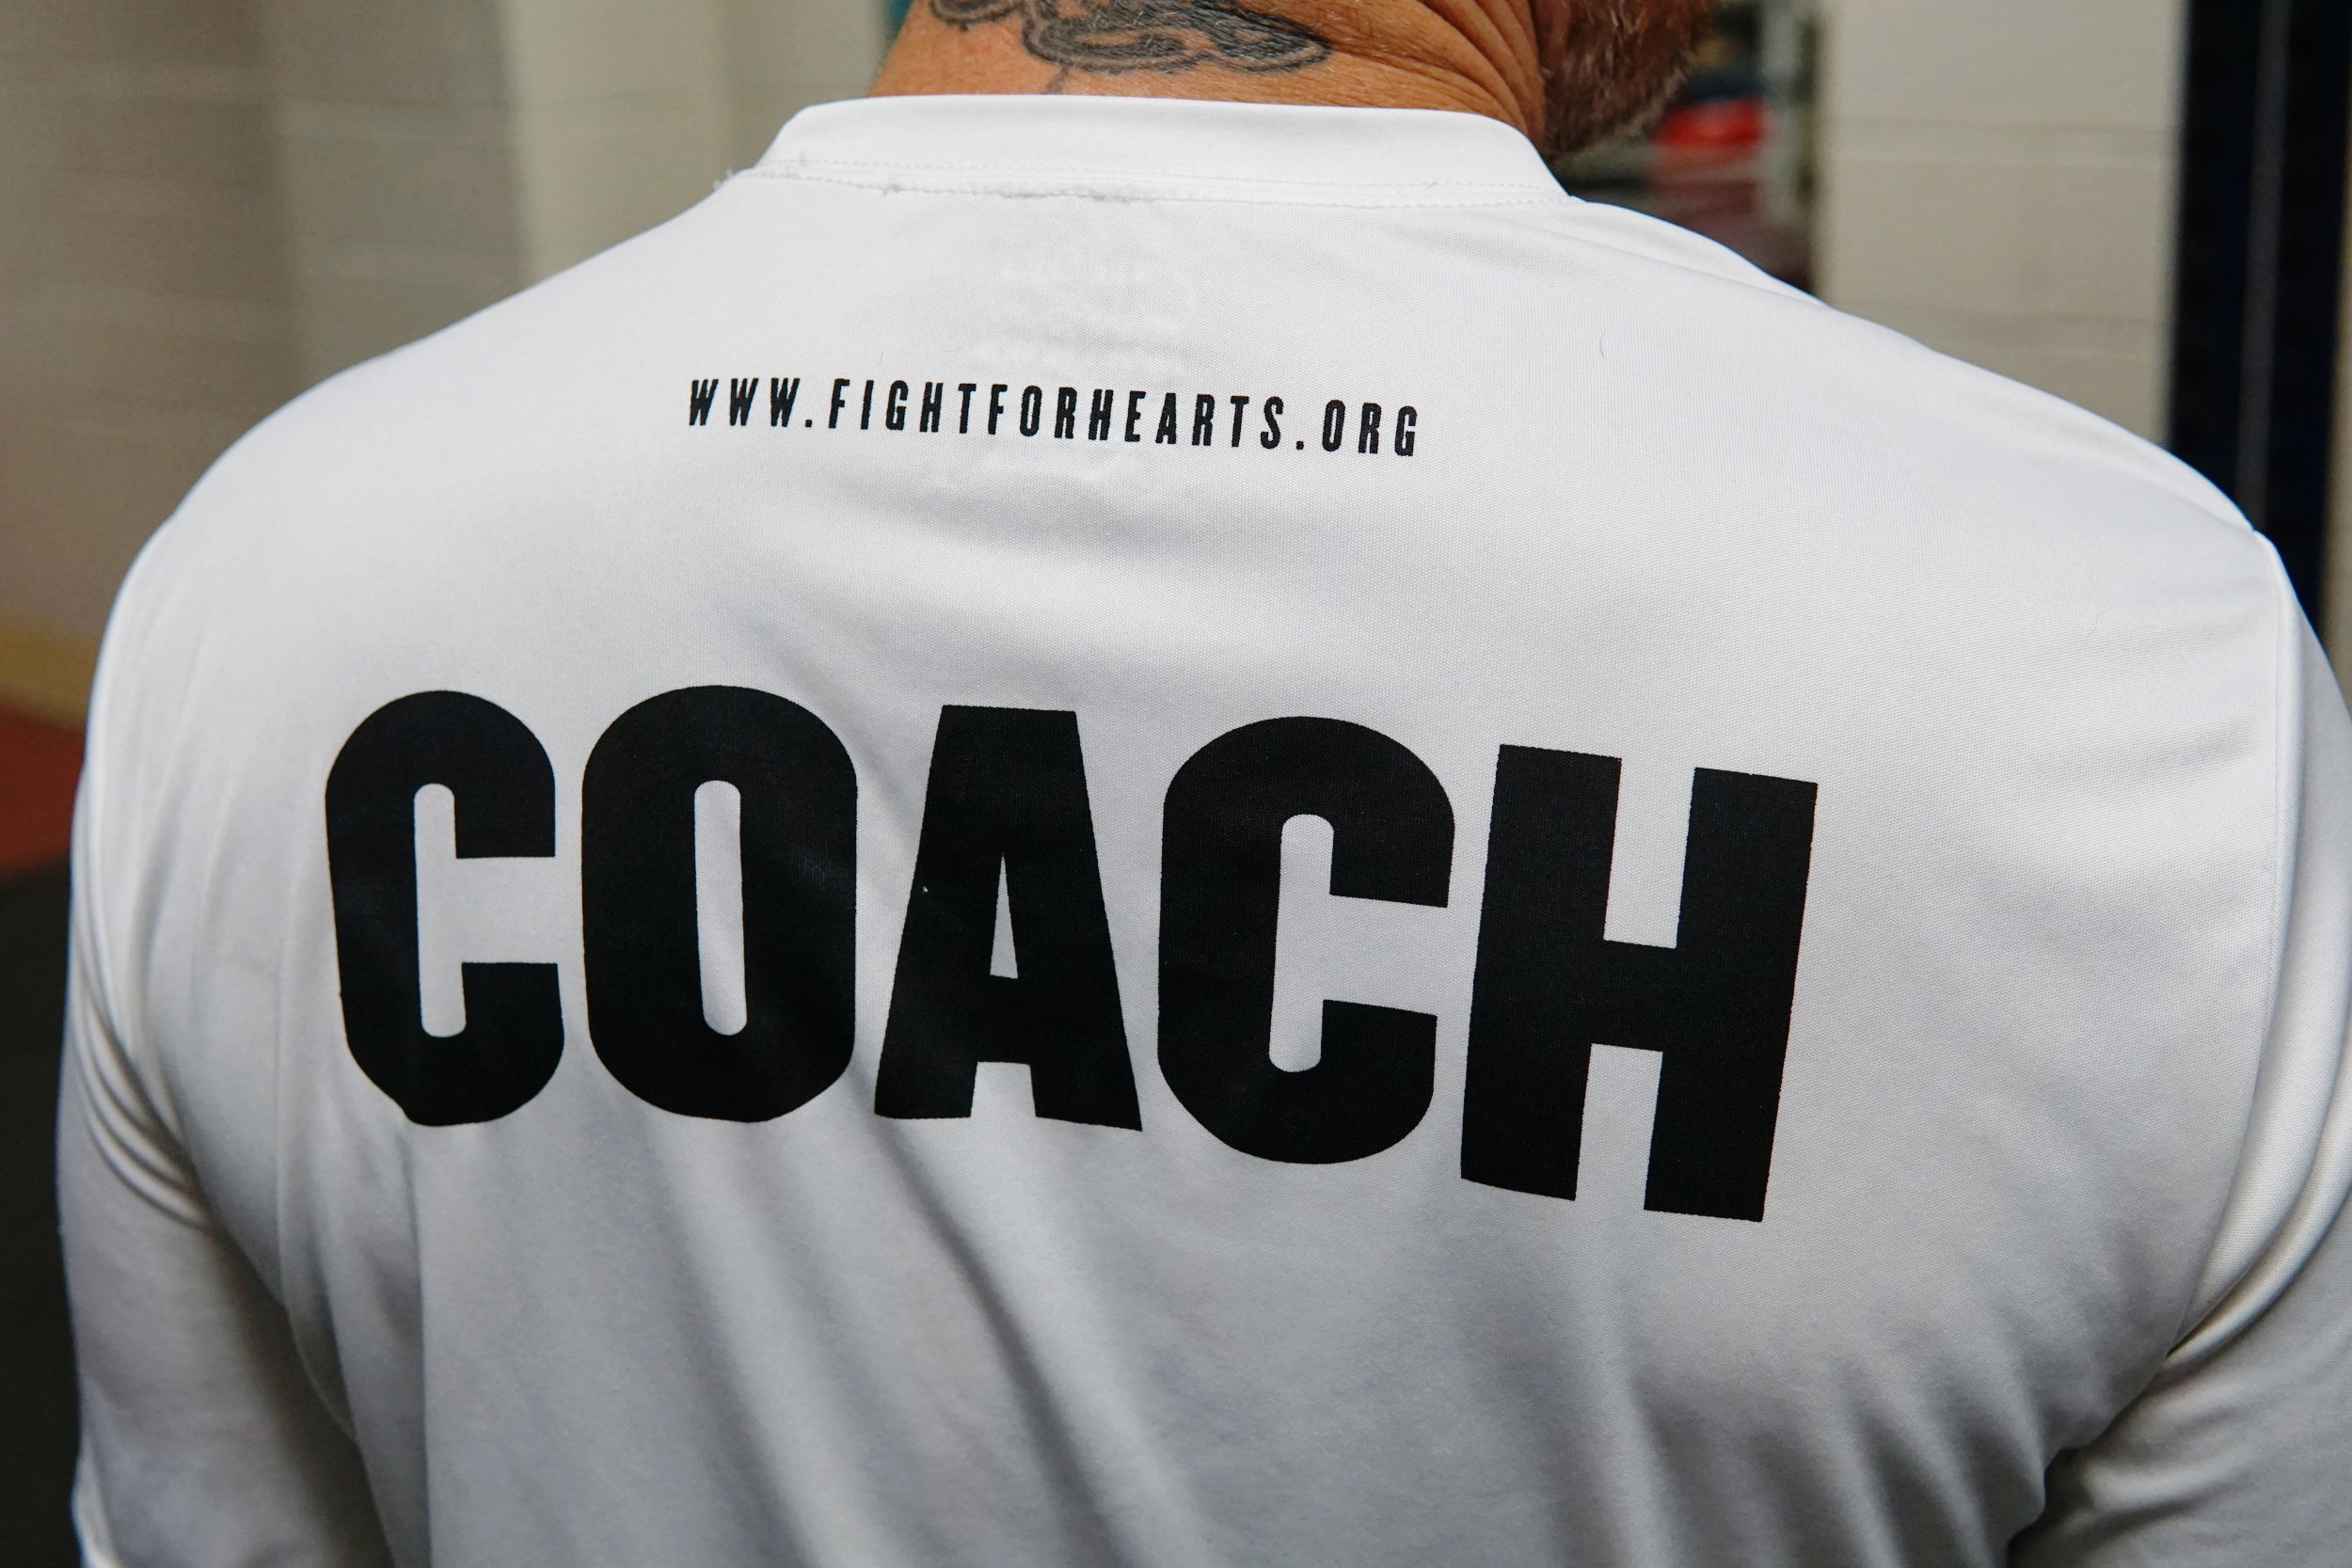 Our coaching staff fight for hearts coachg 1betcityfo Gallery